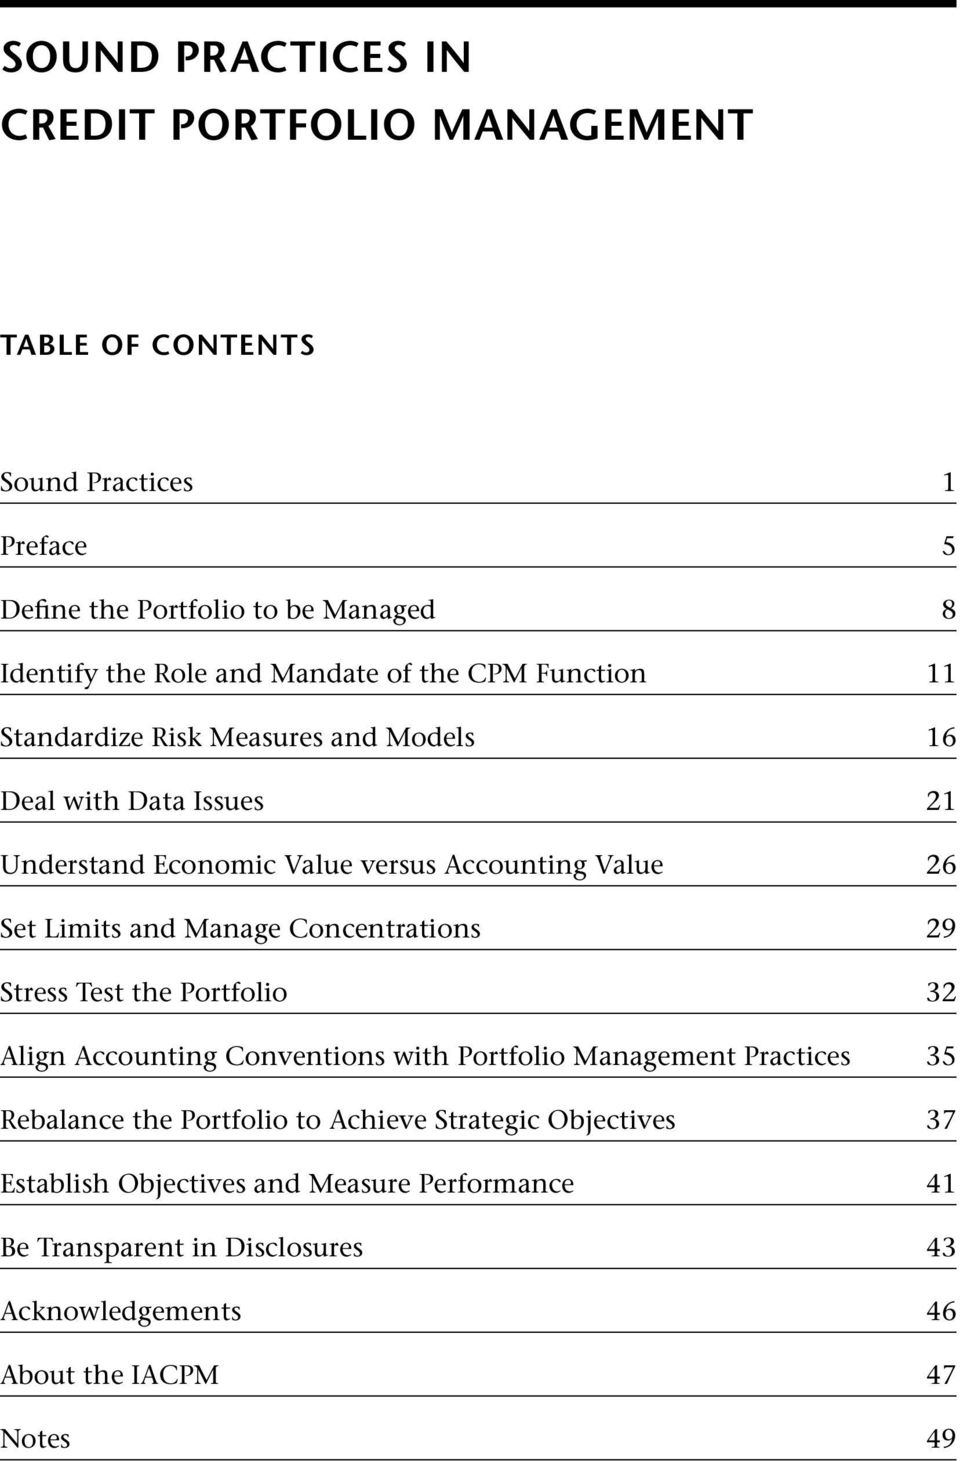 Limits and Manage Concentrations 29 Stress Test the Portfolio 32 Align Accounting Conventions with Portfolio Management Practices 35 Rebalance the Portfolio